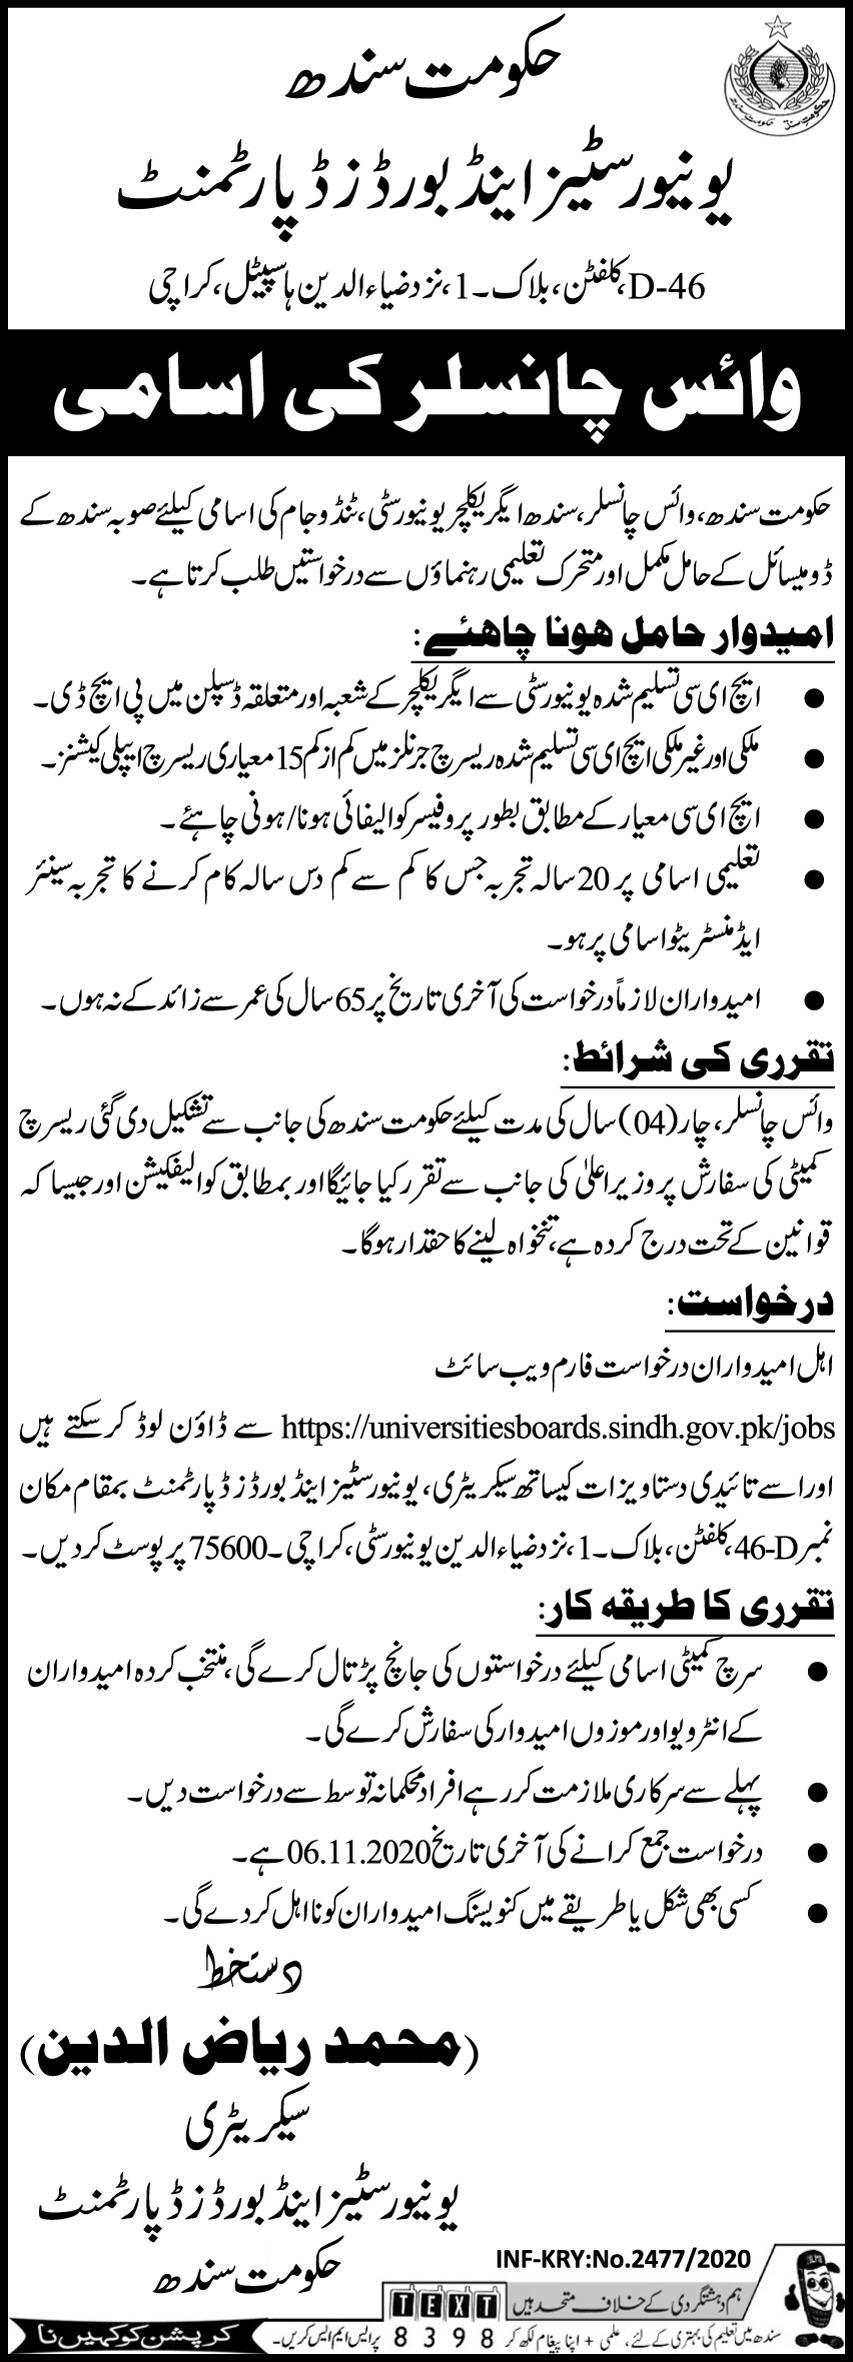 Government of Sindh Universities & Boards Department Jobs September 2020